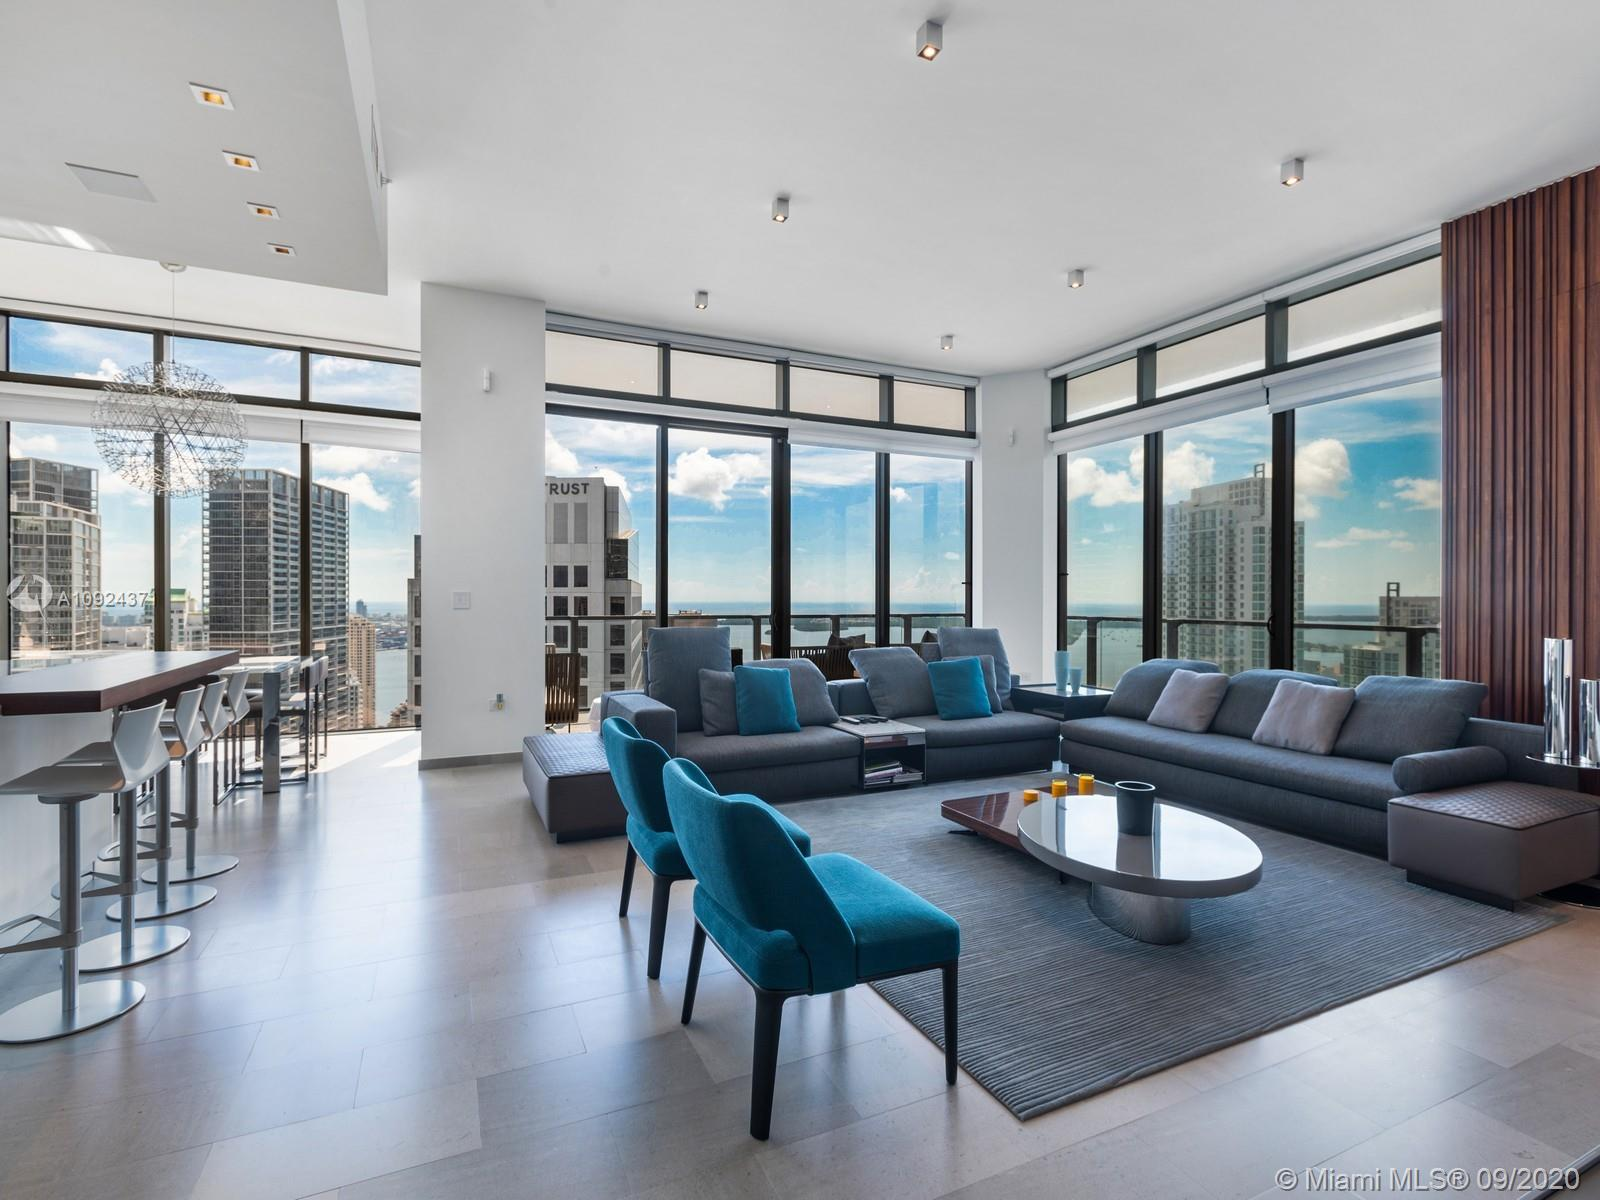 The Residences - Reach at Brickell City Center, include an elite collection of corner units featuring soaring ceilings, floor to ceiling sliding glass doors, a half-acre amenity deck, interior elegance from the lobby to the units make this building unique for the ultra-luxury connoisseur.   This, 4B/4.5B, 4101 unit is equipped with Magnolia@ smart equipment, Hunter Douglas top of the line window treatments, Lutron, whole home audio, lighting controls, upgraded kitchen appliances, Carrara marble upgraded kitchen counters & backsplash. Everything in this home in the sky is completely automated w/maximum speed wireless internet everywhere.  A modern designed has been completely executed by the philosophy of the Salvioni Network, where every piece of furniture & art has been carefully selected